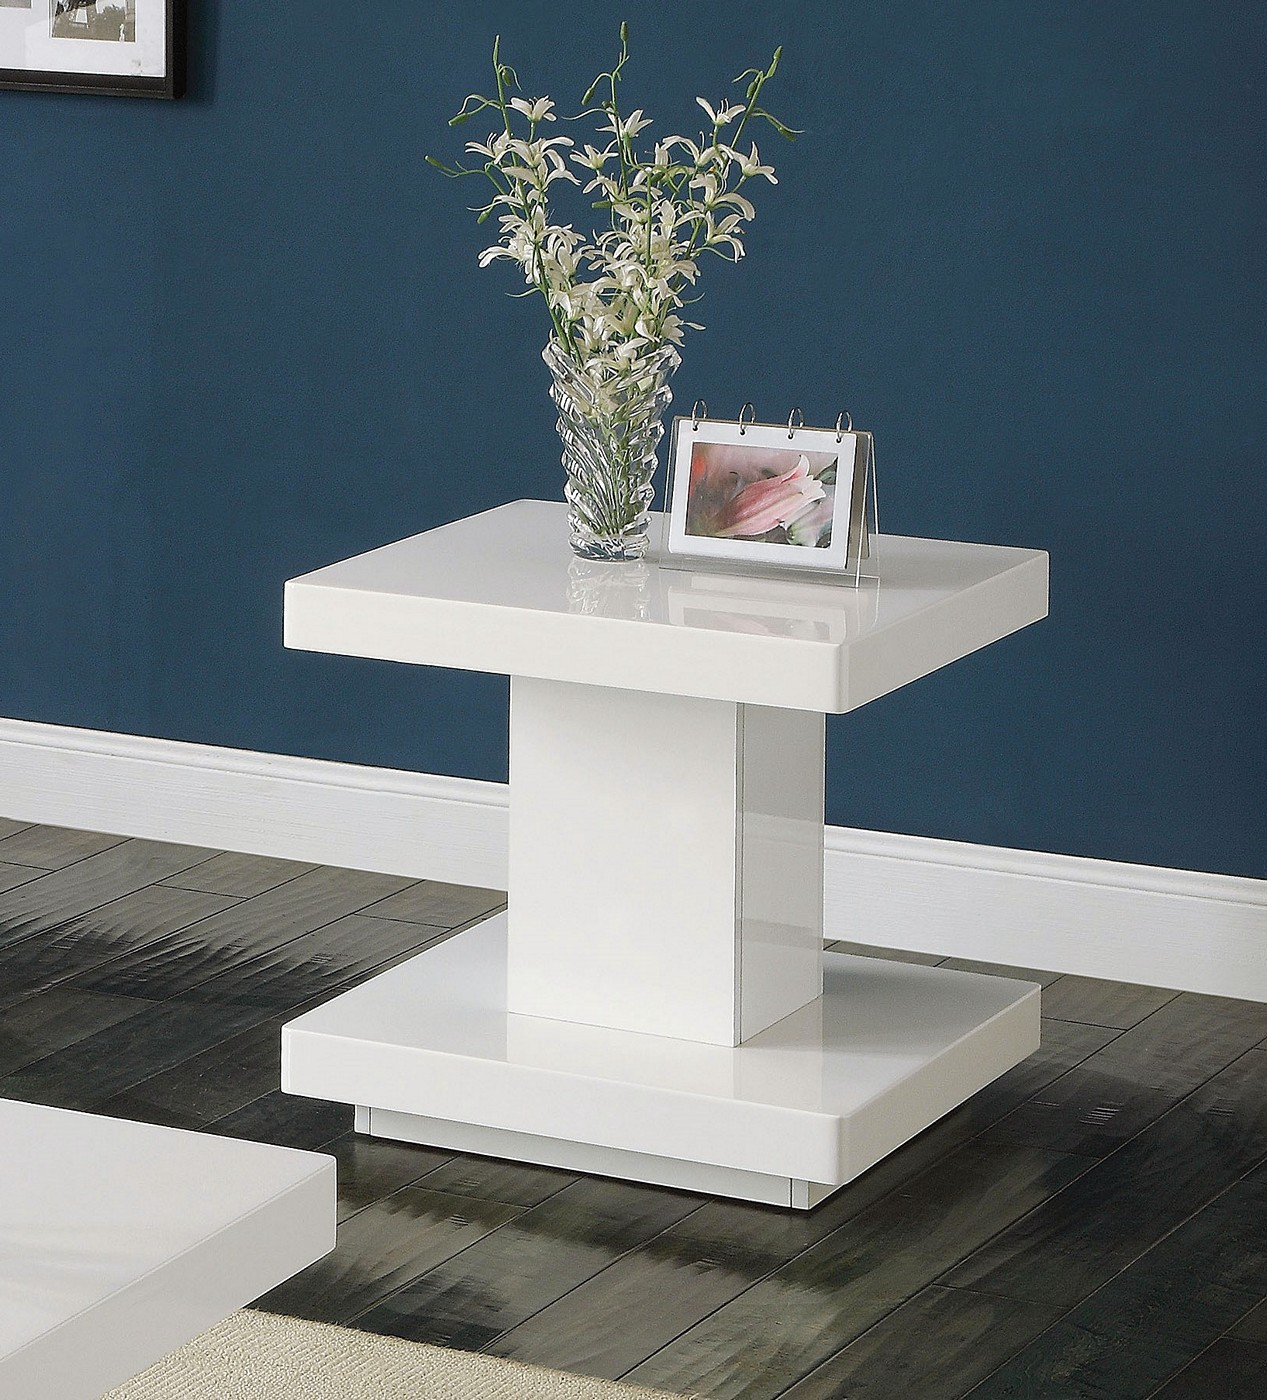 Modern Oval White High Gloss Glossy Lacquer Coffee Table: Ifama Contemporary End Table In White High Gloss Lacquer